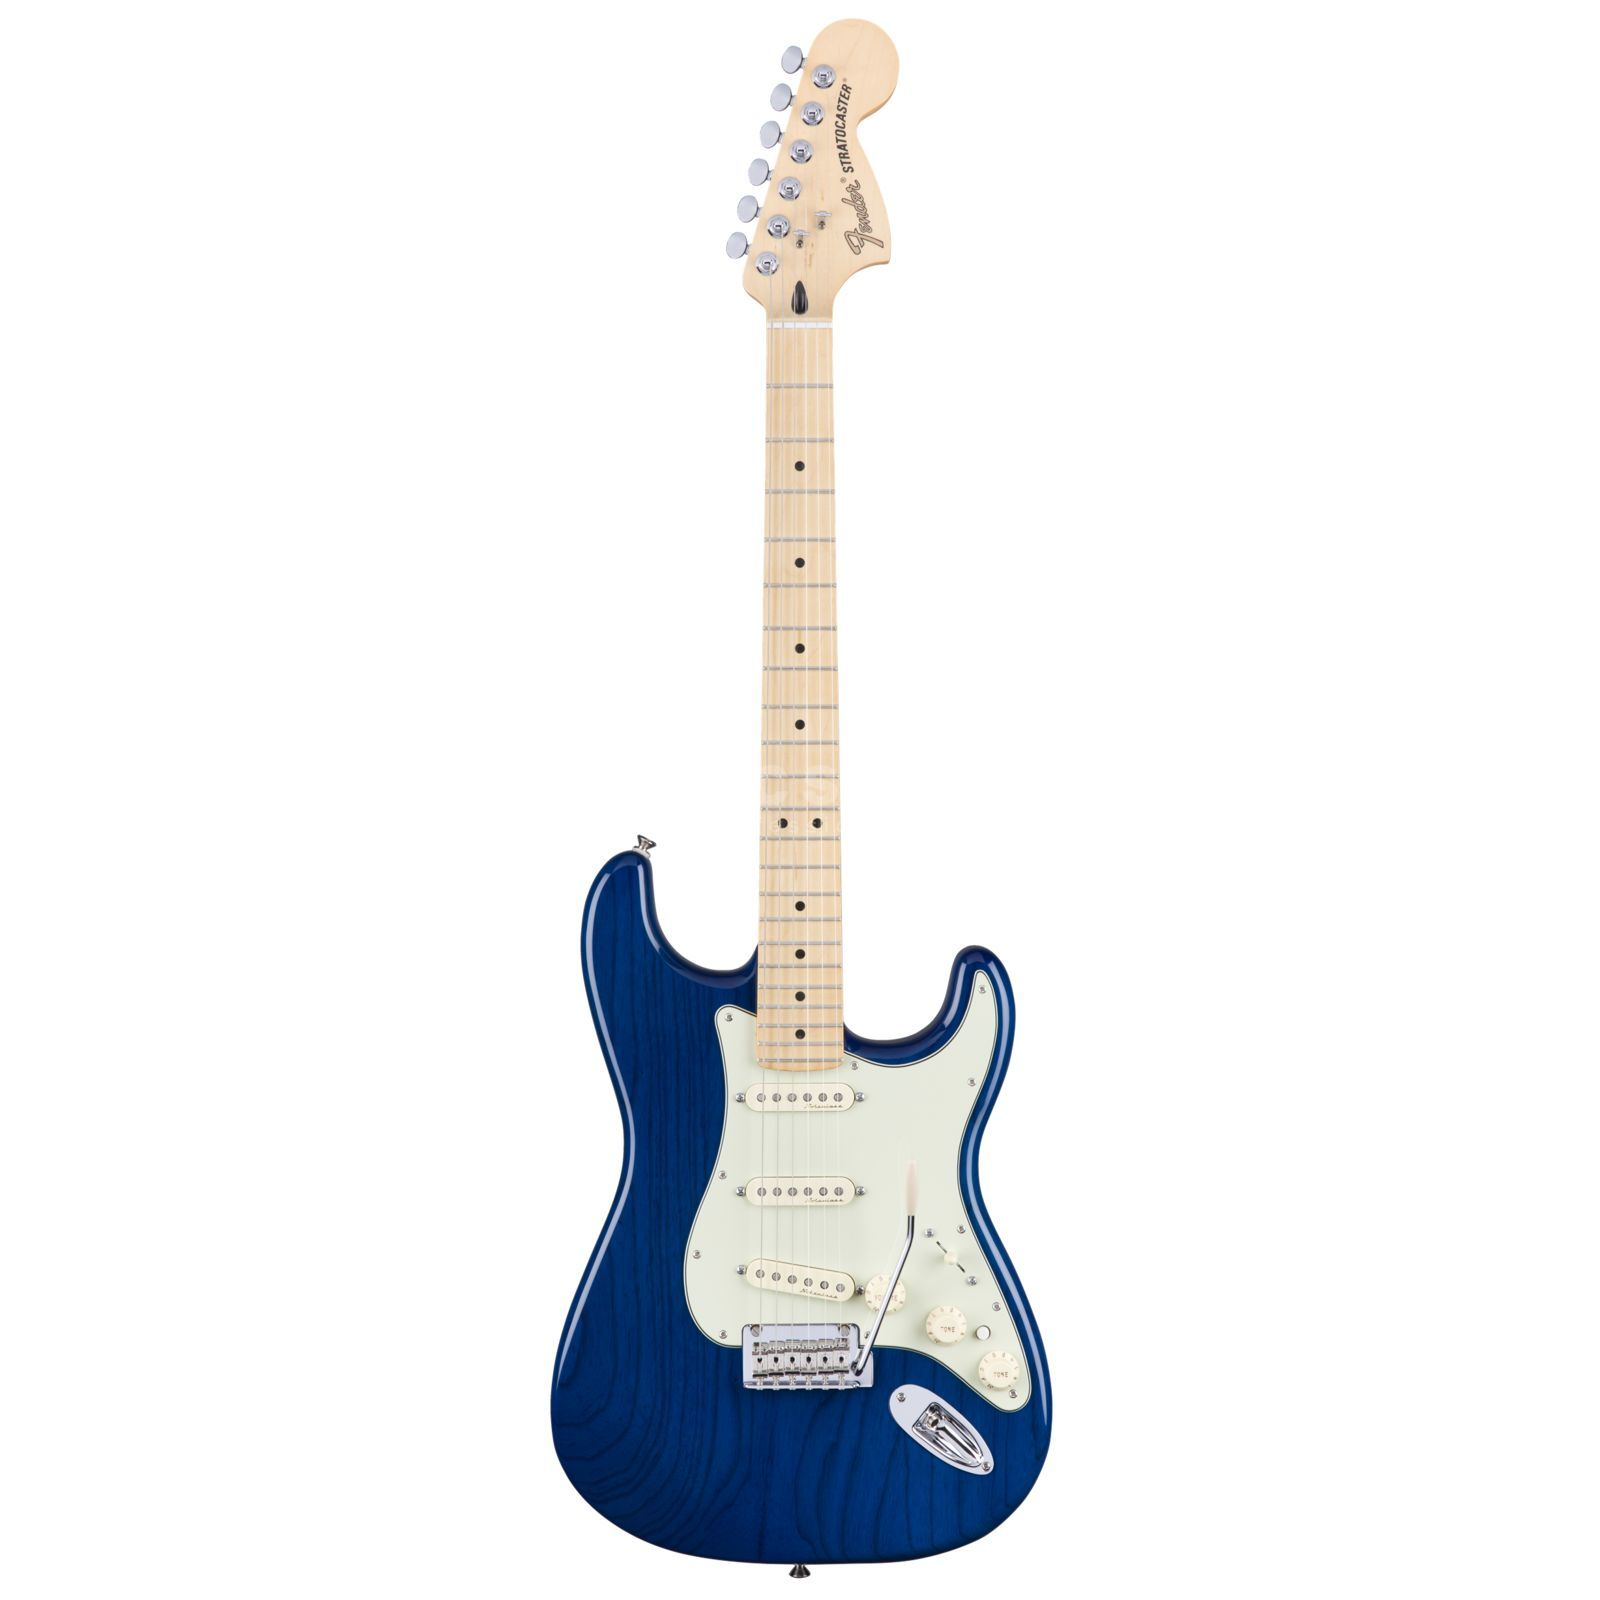 Fender Deluxe Stratocaster MN SBT Sapphire Blue Transparent Product Image